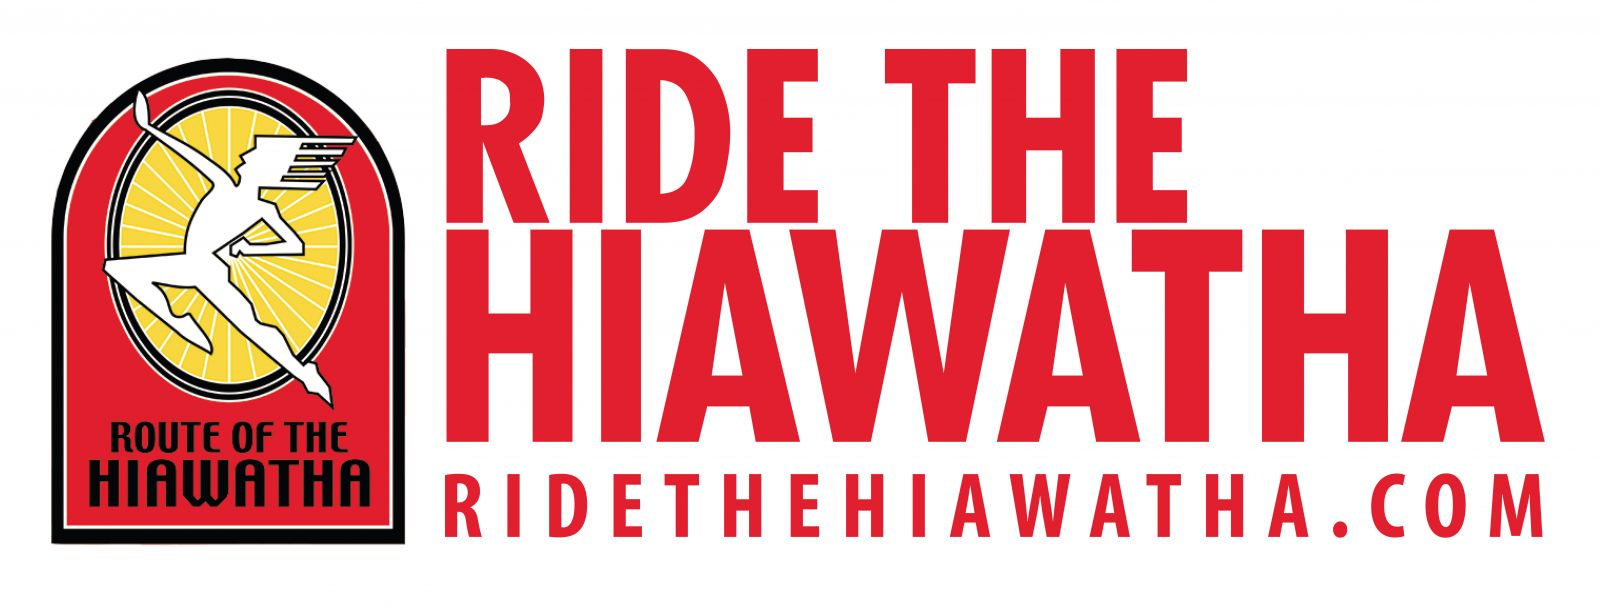 Ride the Hiawatha logo